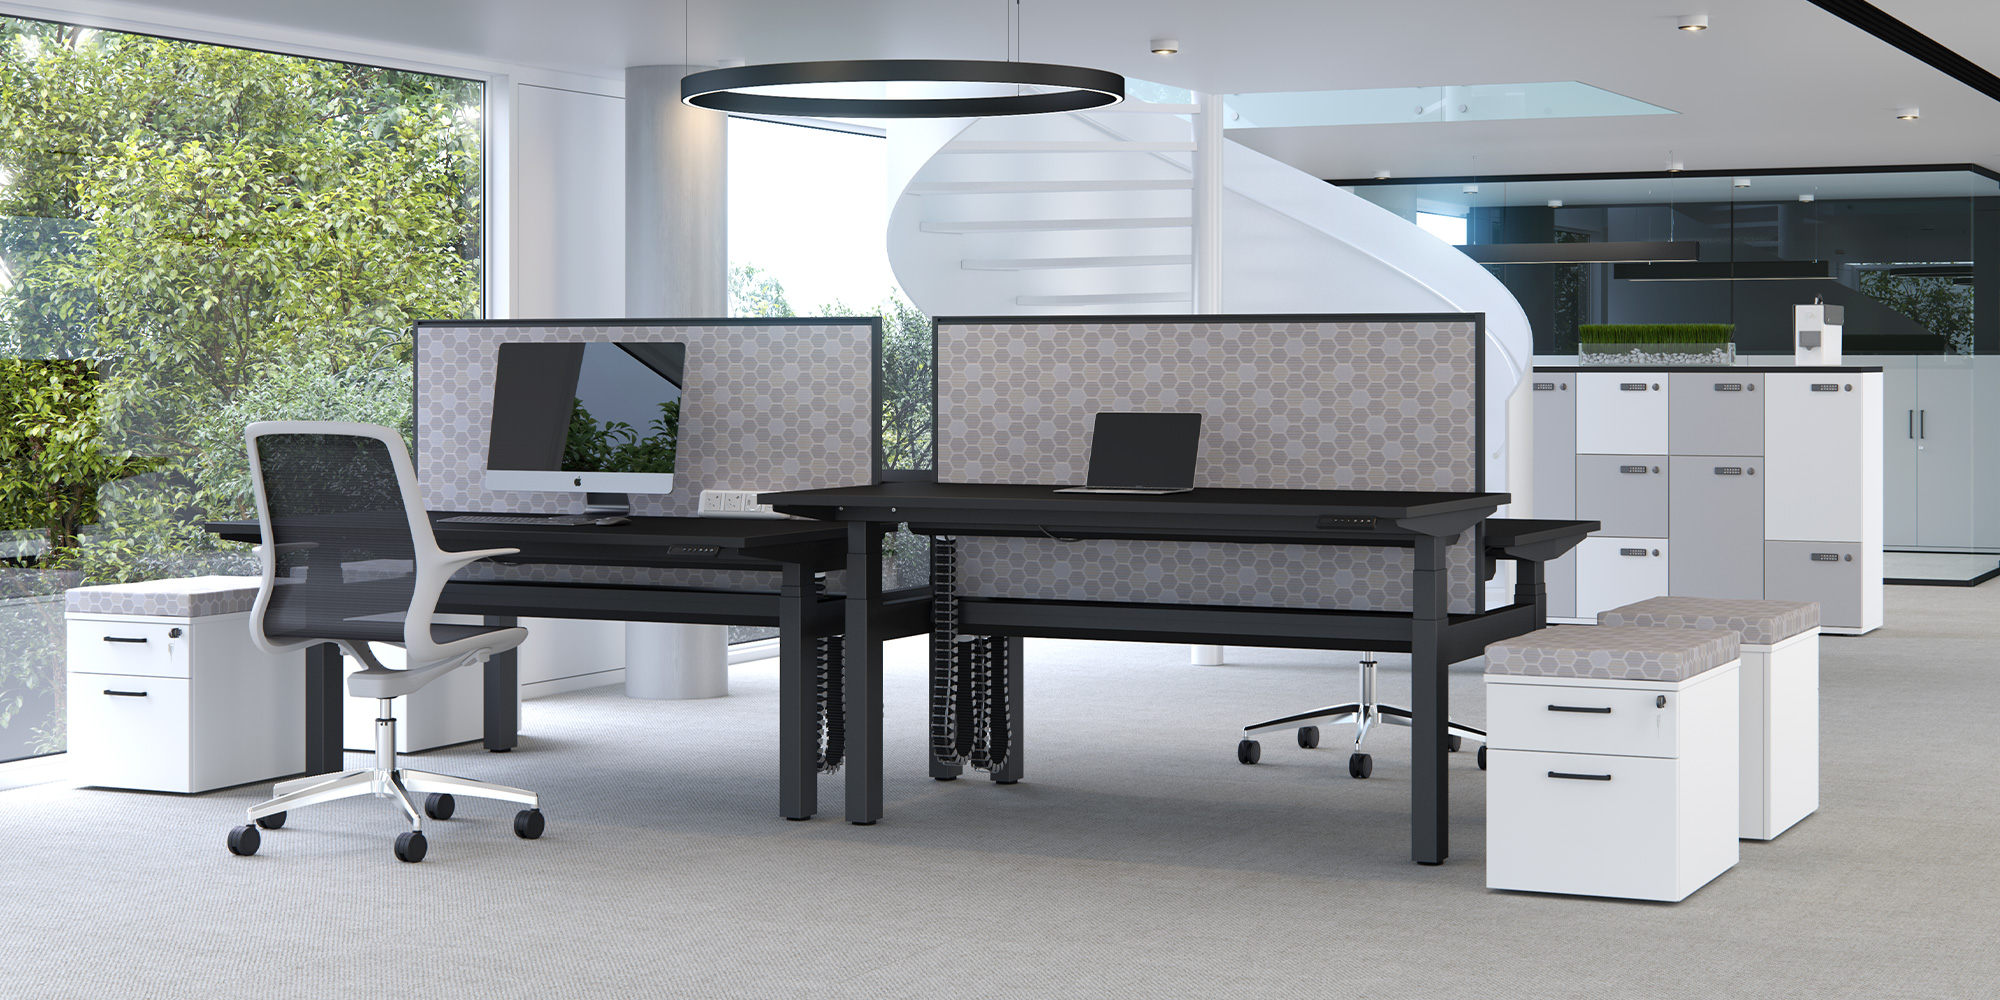 System Desk Mounted Screens Roomset